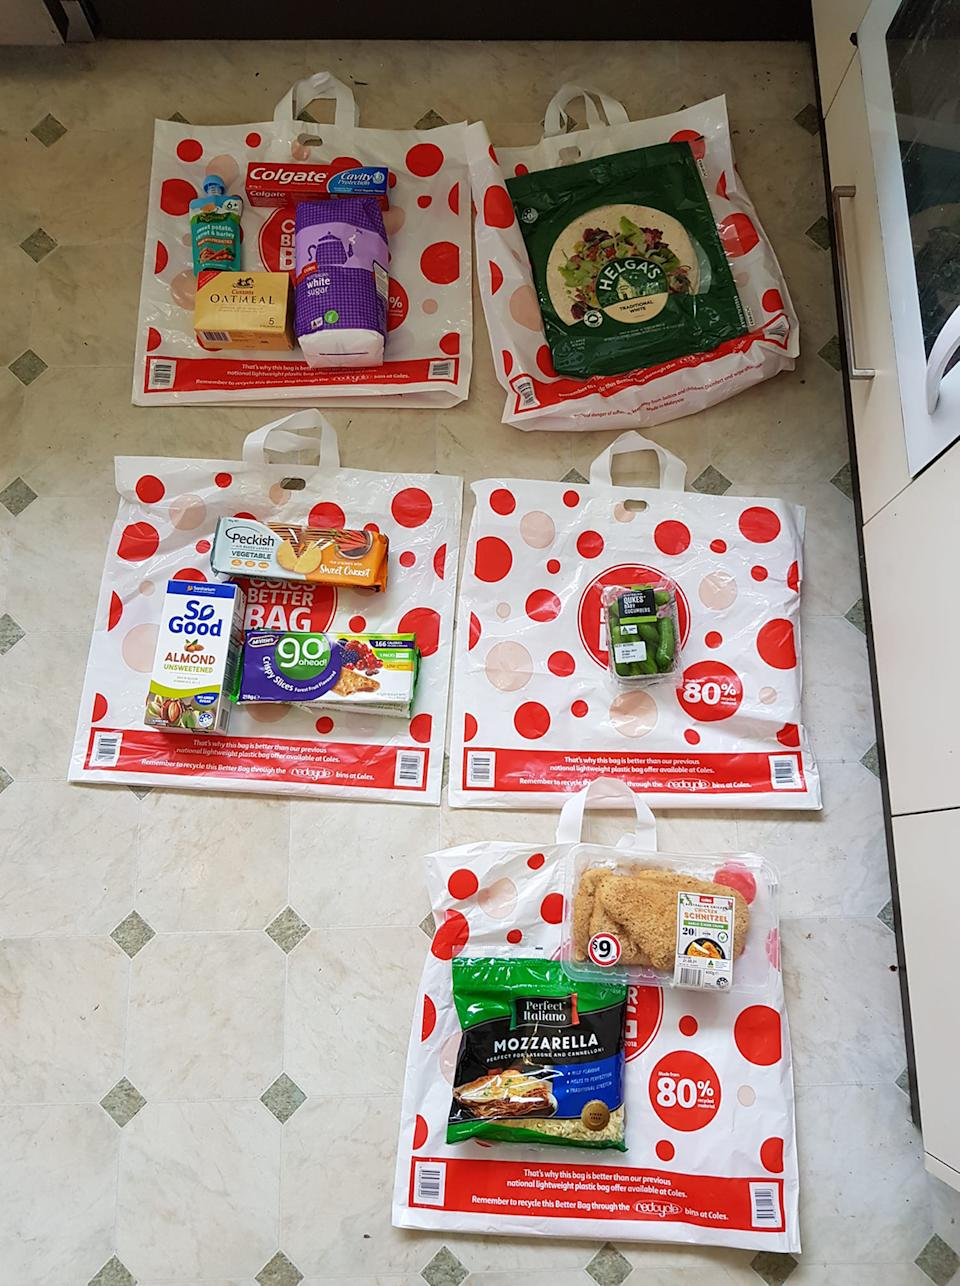 Photo from Facebook of Coles delivery order laid out on the ground.